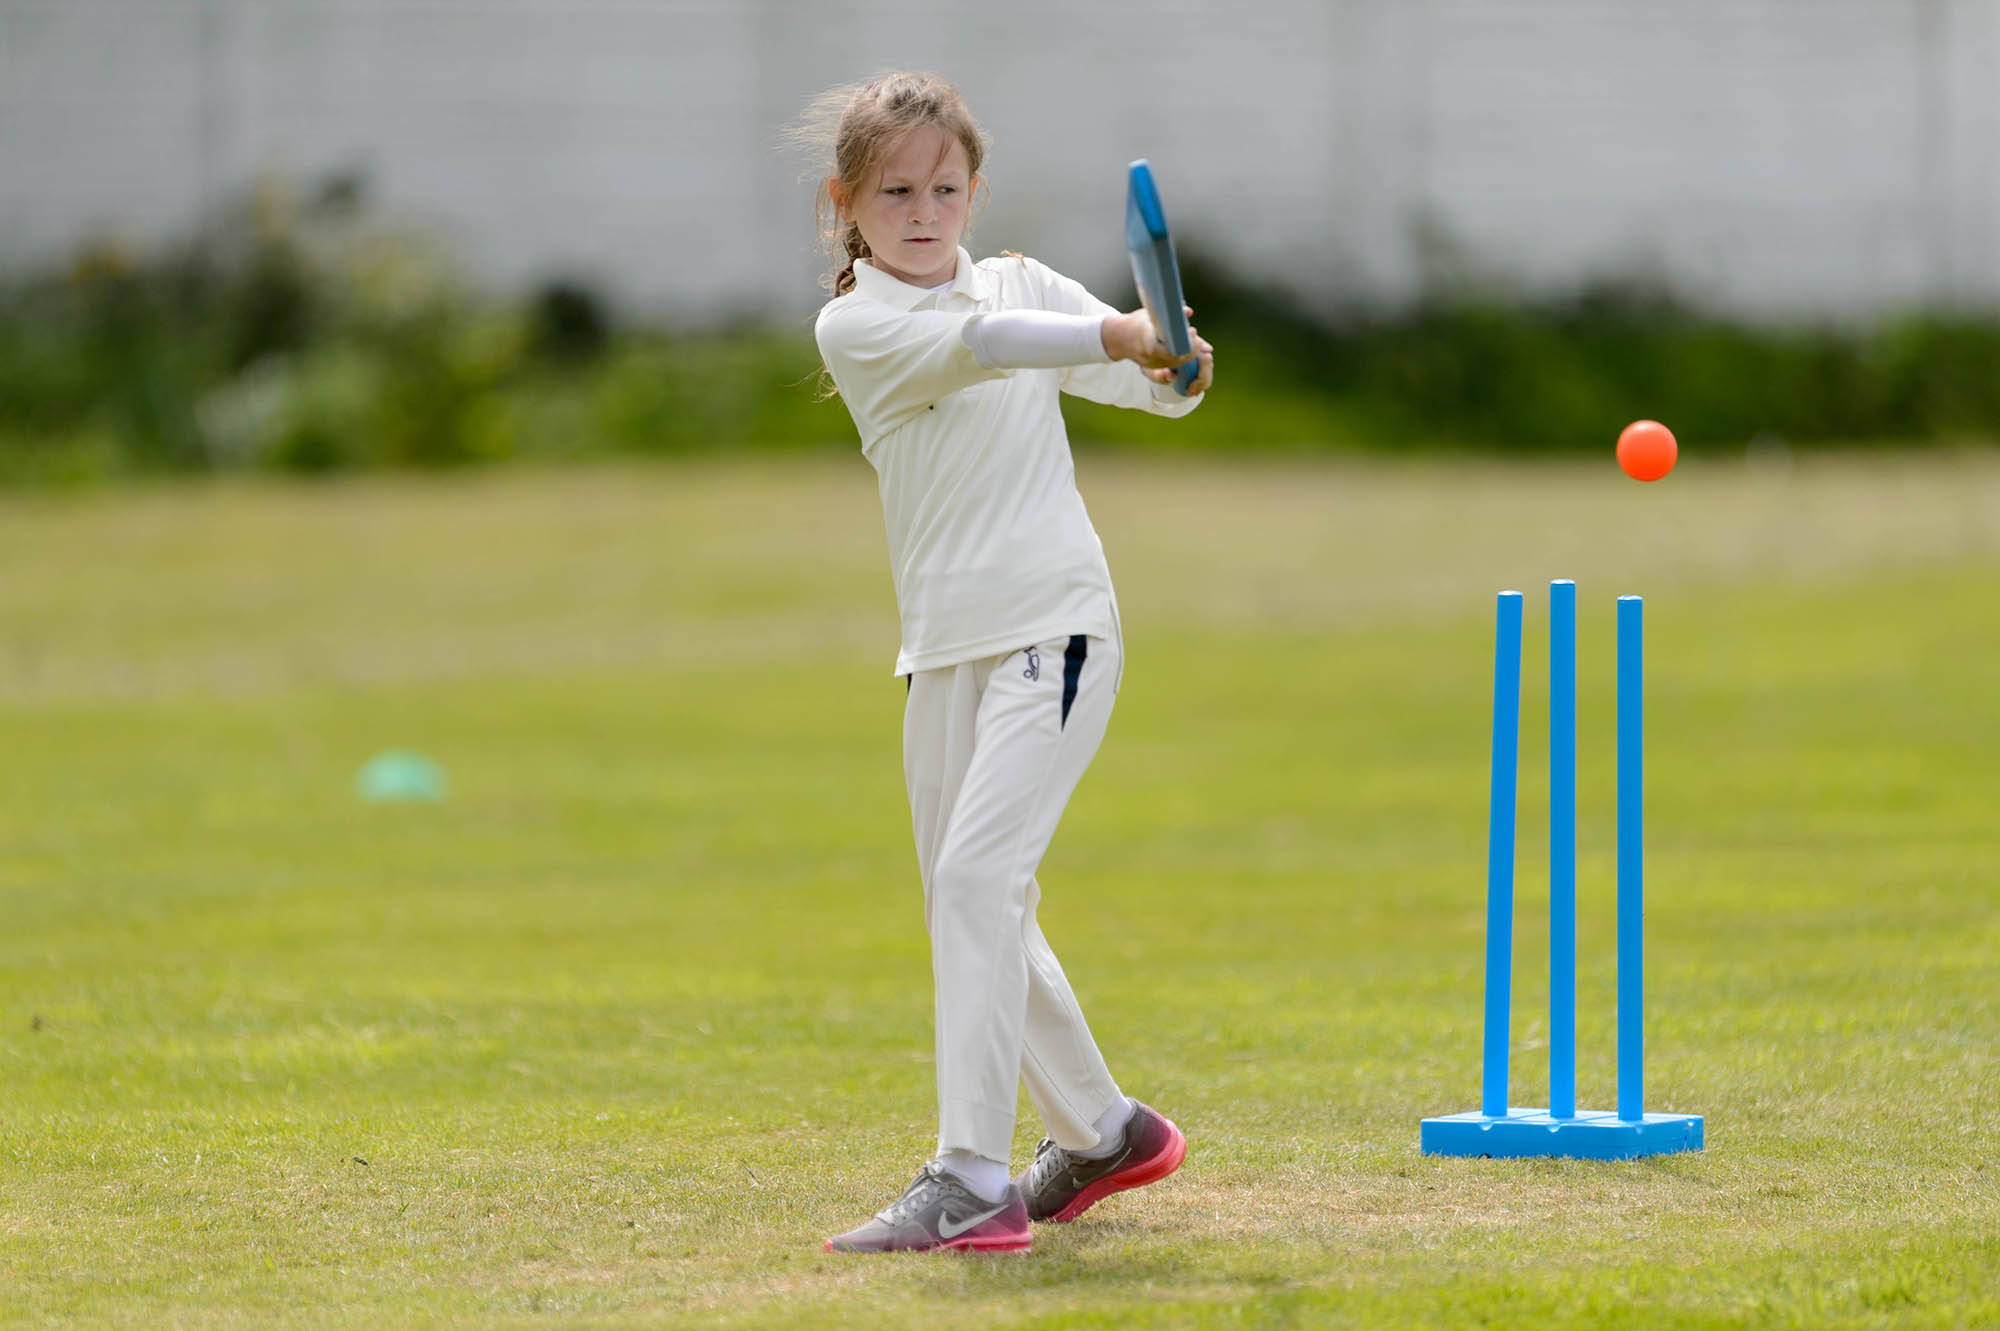 young girl batting a ball away cricket outdoors